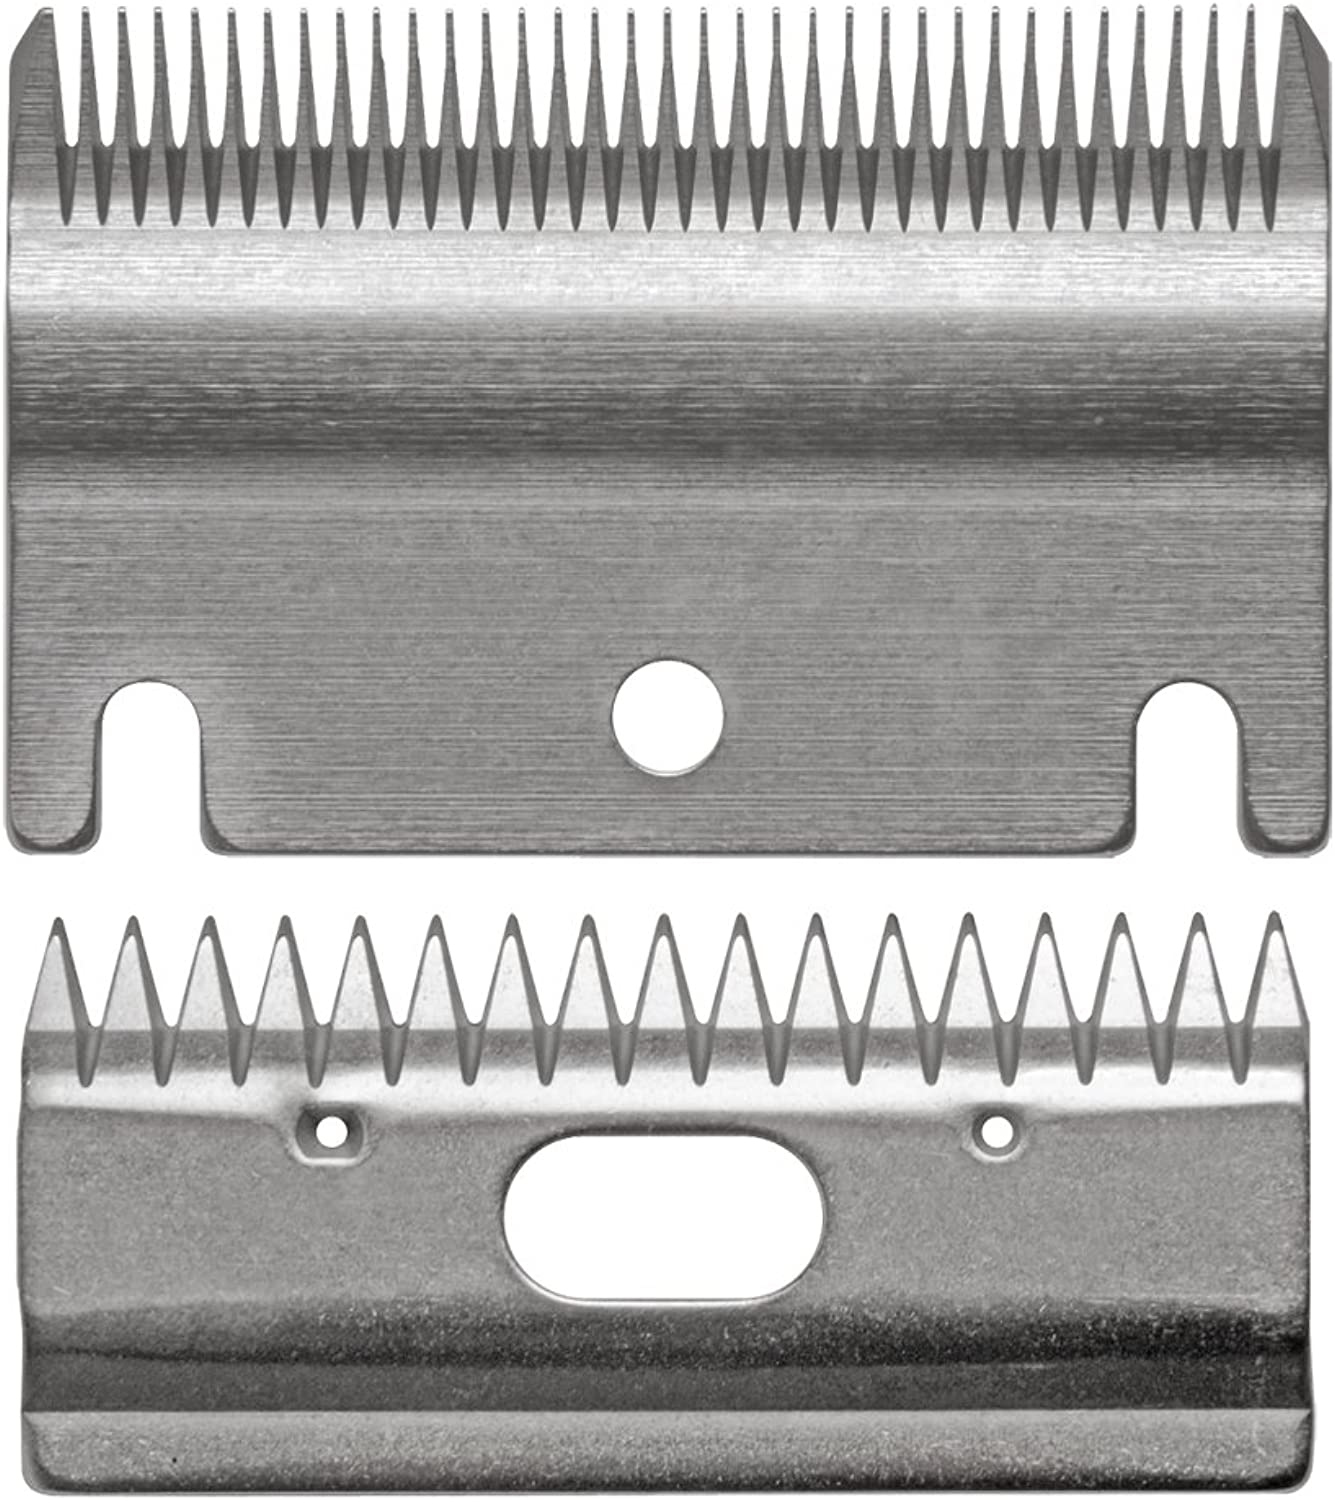 Furzone FA12 Animal Blade Set, Large